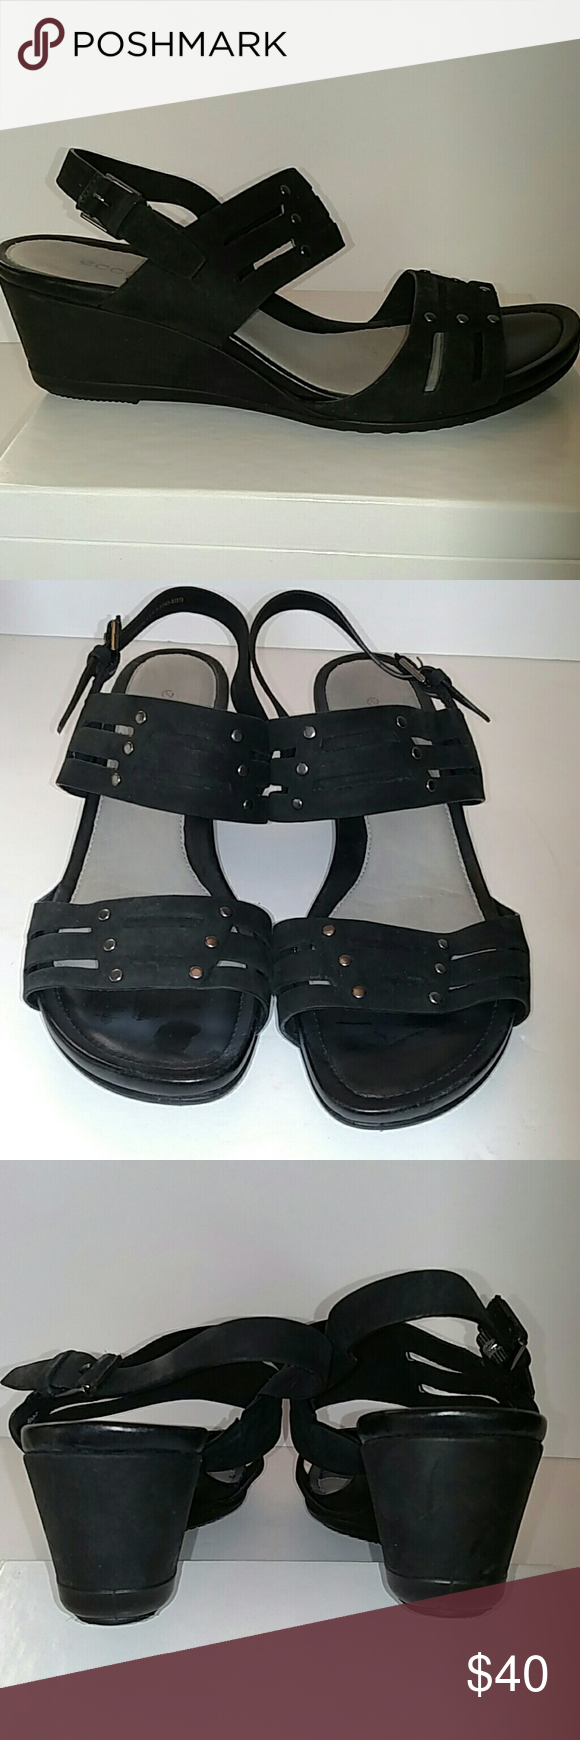 Ecco Touch 45 Wedge Sandal Black with gunmetal studs and buckles. Suede leather upper. 2 inch heel. No signs of wear. Size 39 Ecco Shoes Wedges